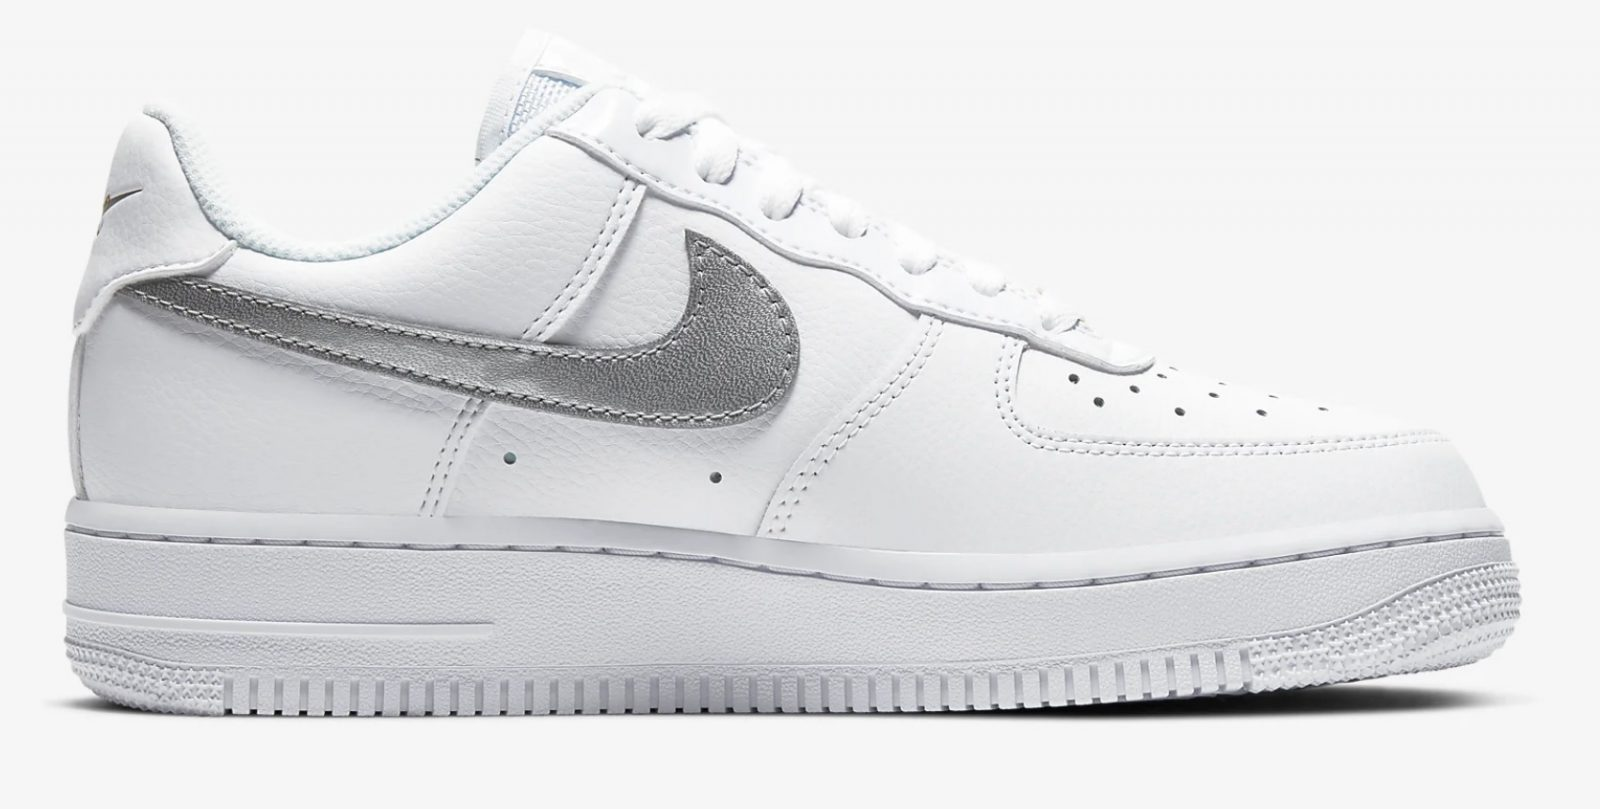 CT2549-100 Nike Air Force 1 Silver Gold side 2